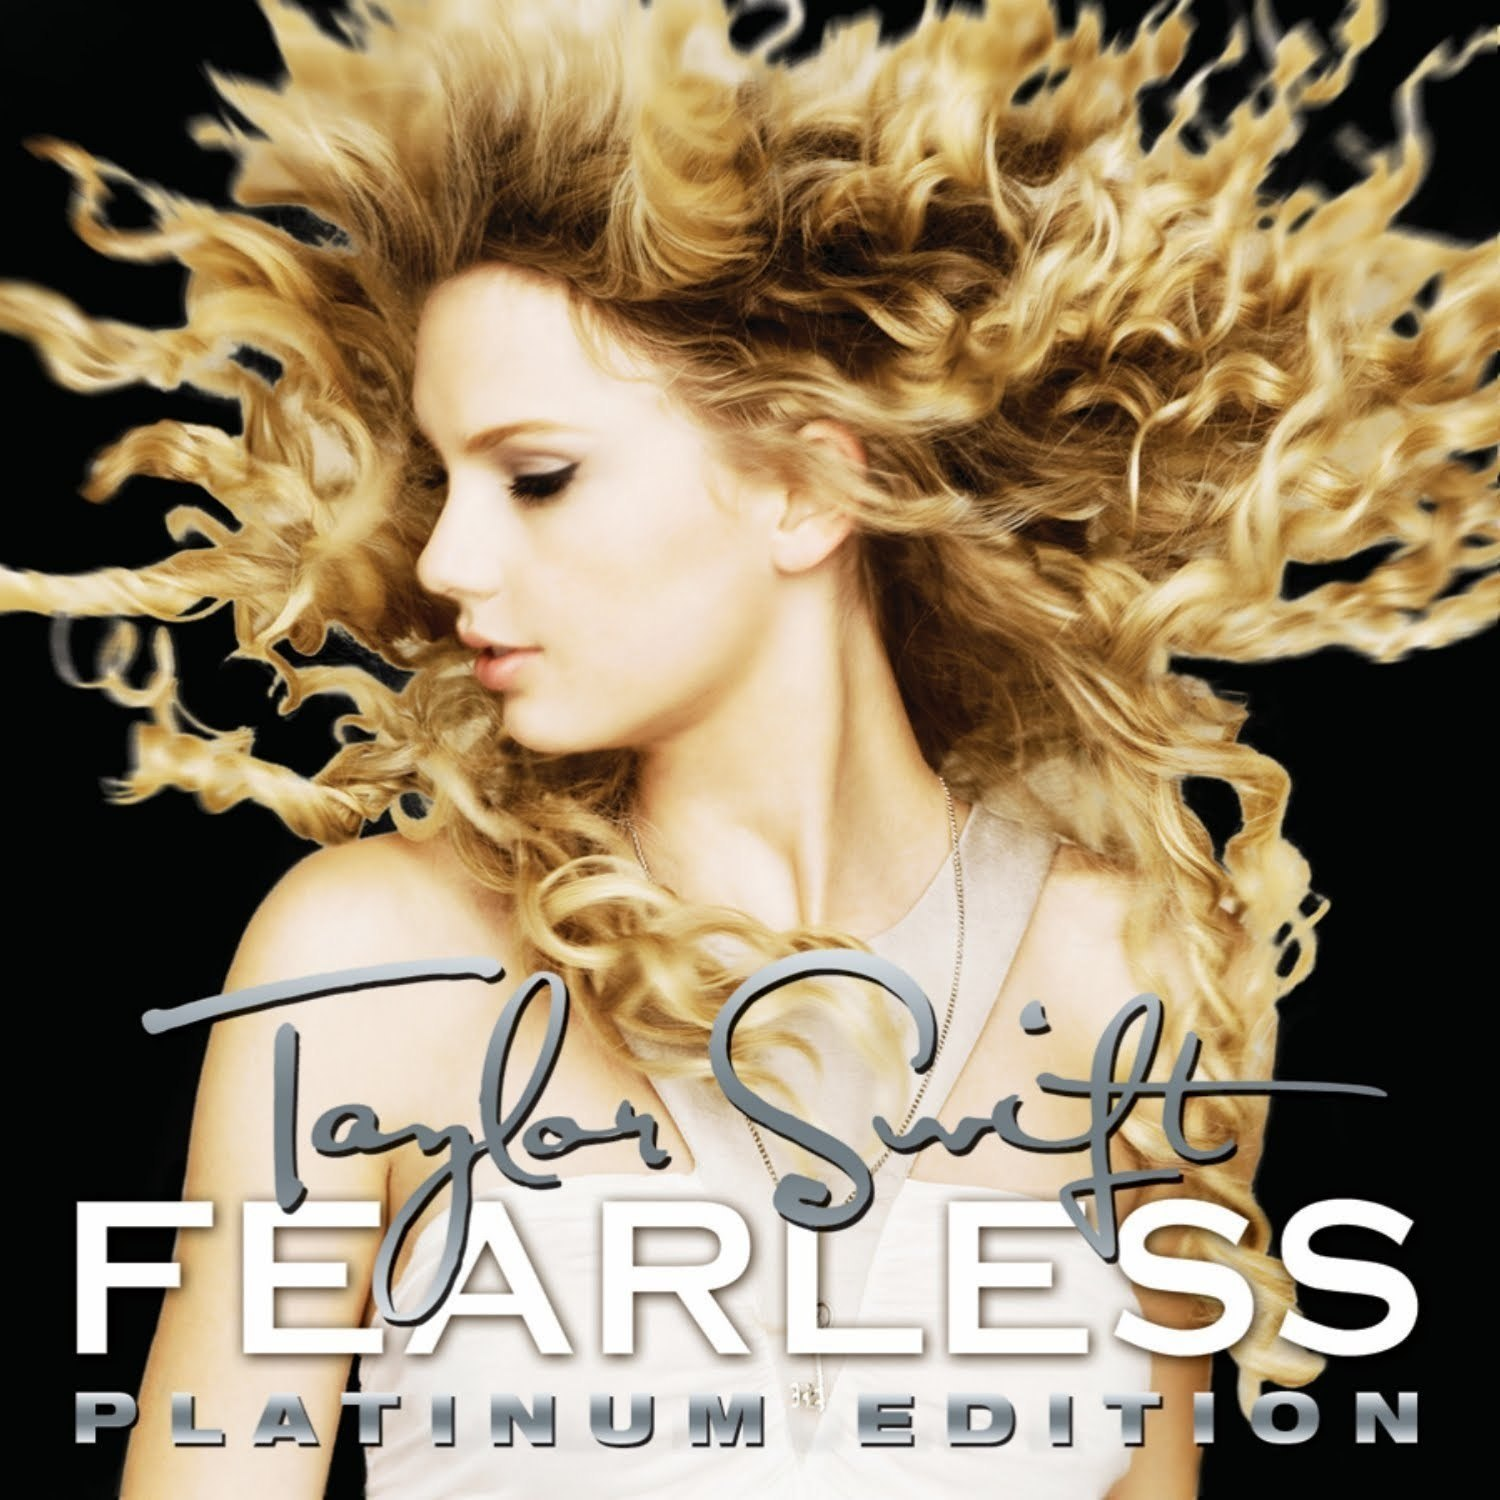 http://4.bp.blogspot.com/-DzXEwz9bs5E/UObWrAl1Z0I/AAAAAAAAA2M/I_6KsugEY0M/s1600/Fearless-Platinum-Edition-Official-Album-Cover-fearless-taylor-swift-album-14877441-1500-1500+(1).jpg